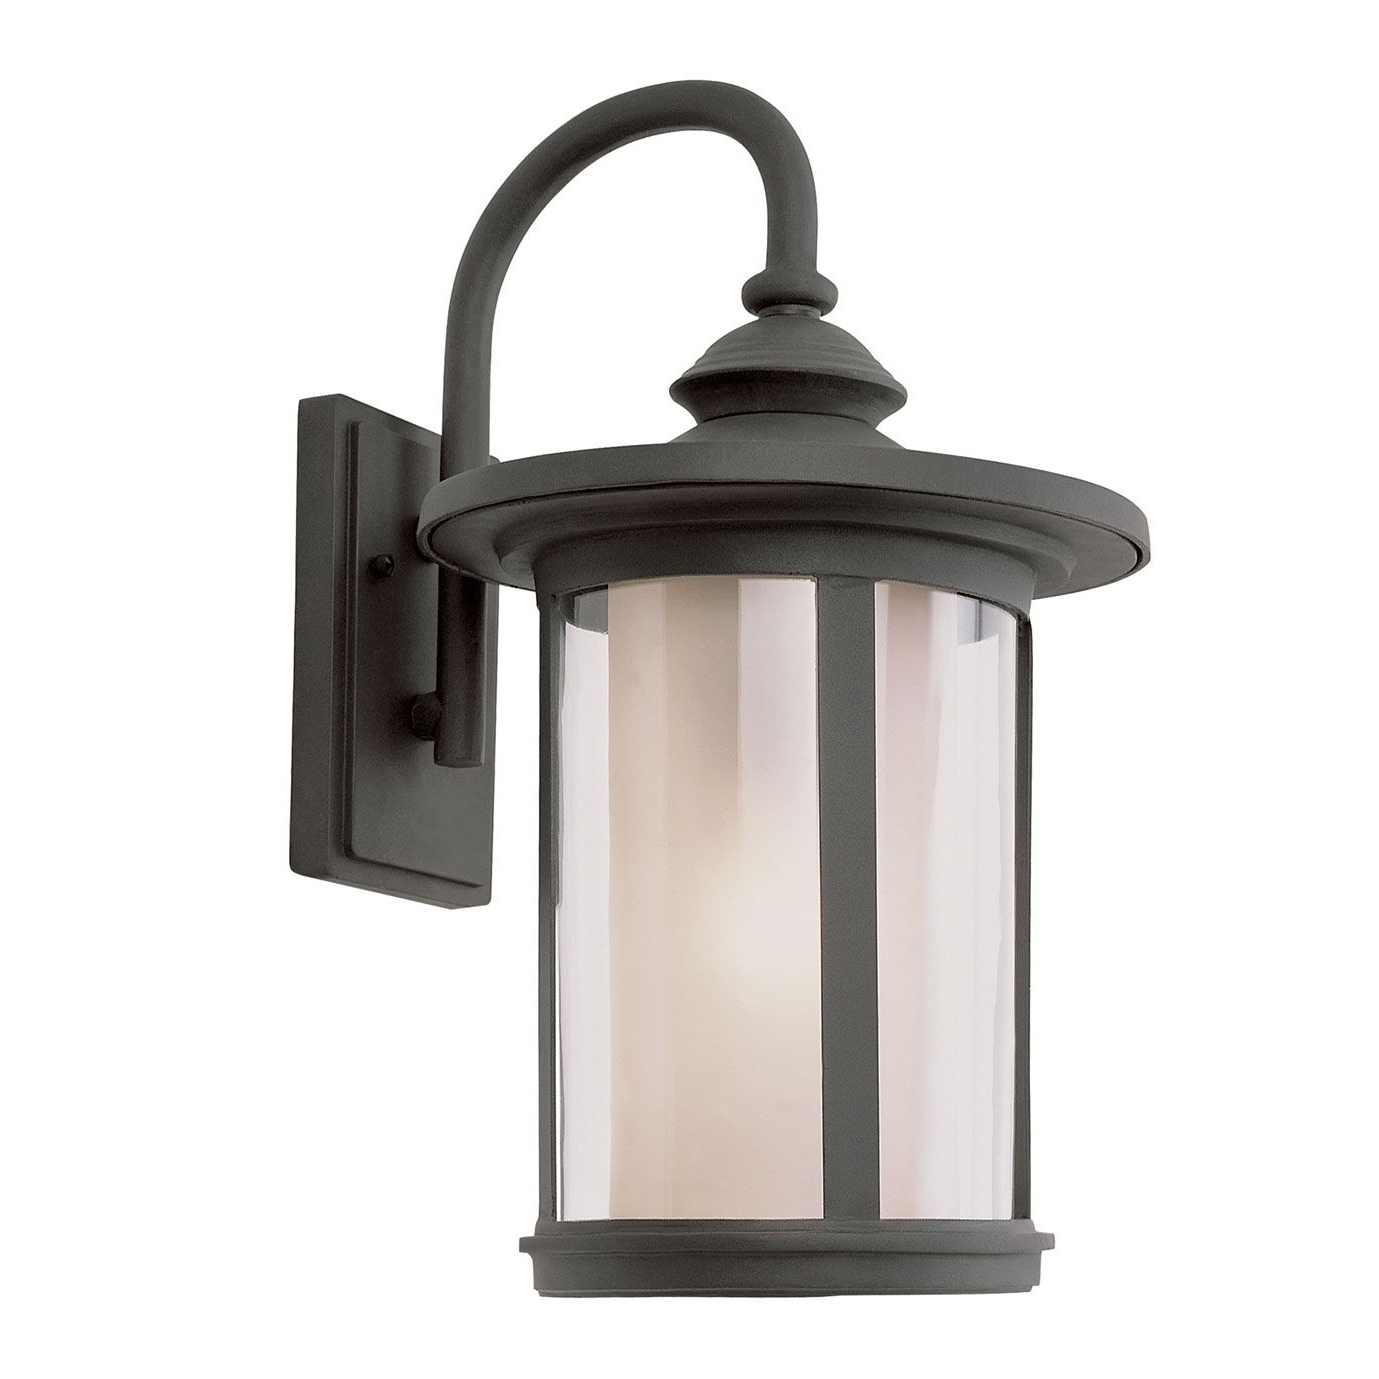 P> Chimney Stack Outdoor Wall Lantern Features Tea Stain Clear Pertaining To Fashionable Outdoor Weather Resistant Lanterns (View 14 of 20)